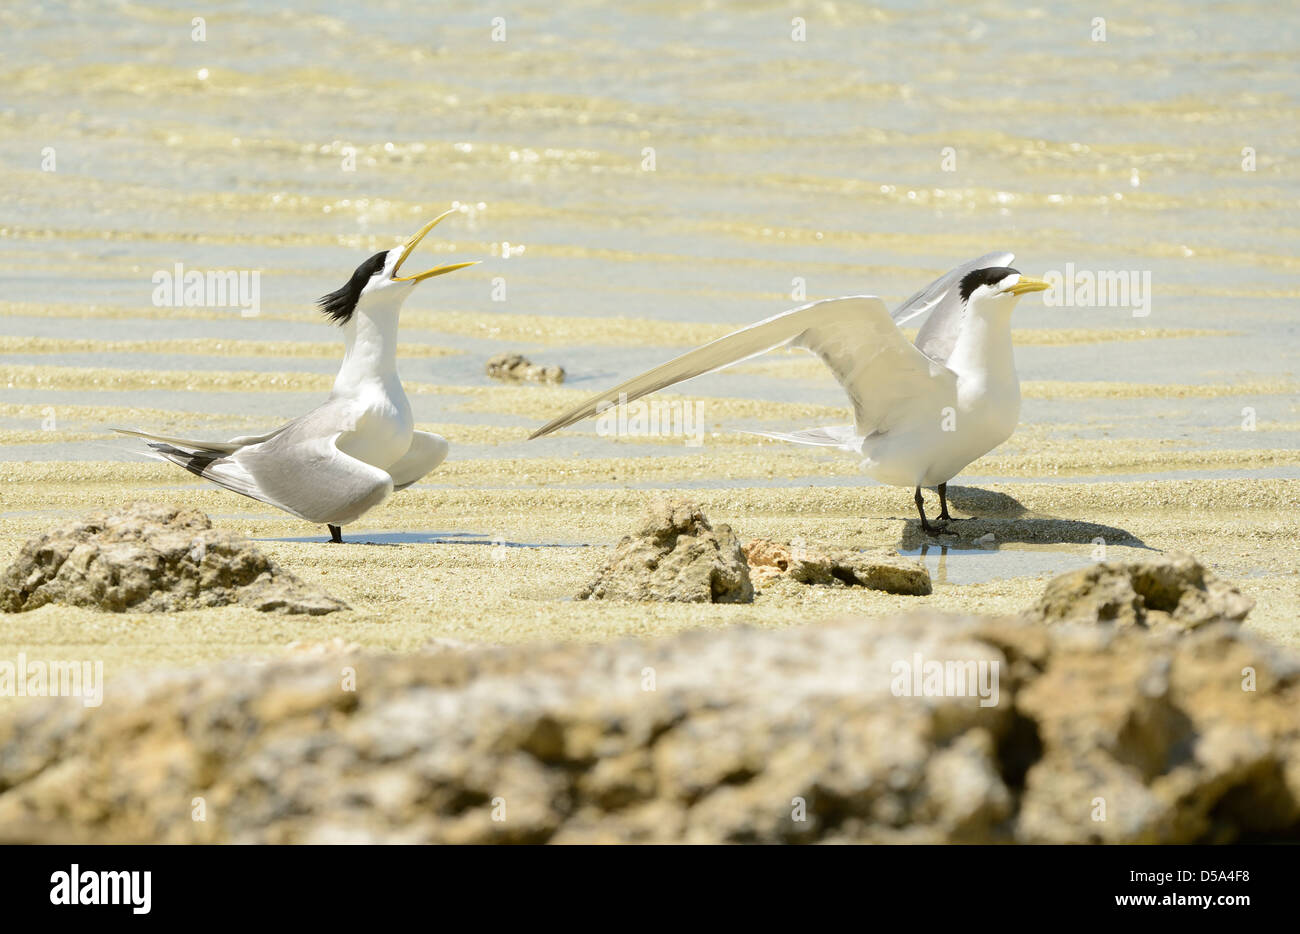 Greater Crested or Swift Tern (Thalasseus bergii) pair standing on the beach, courtship display, Queensland, Australia - Stock Image